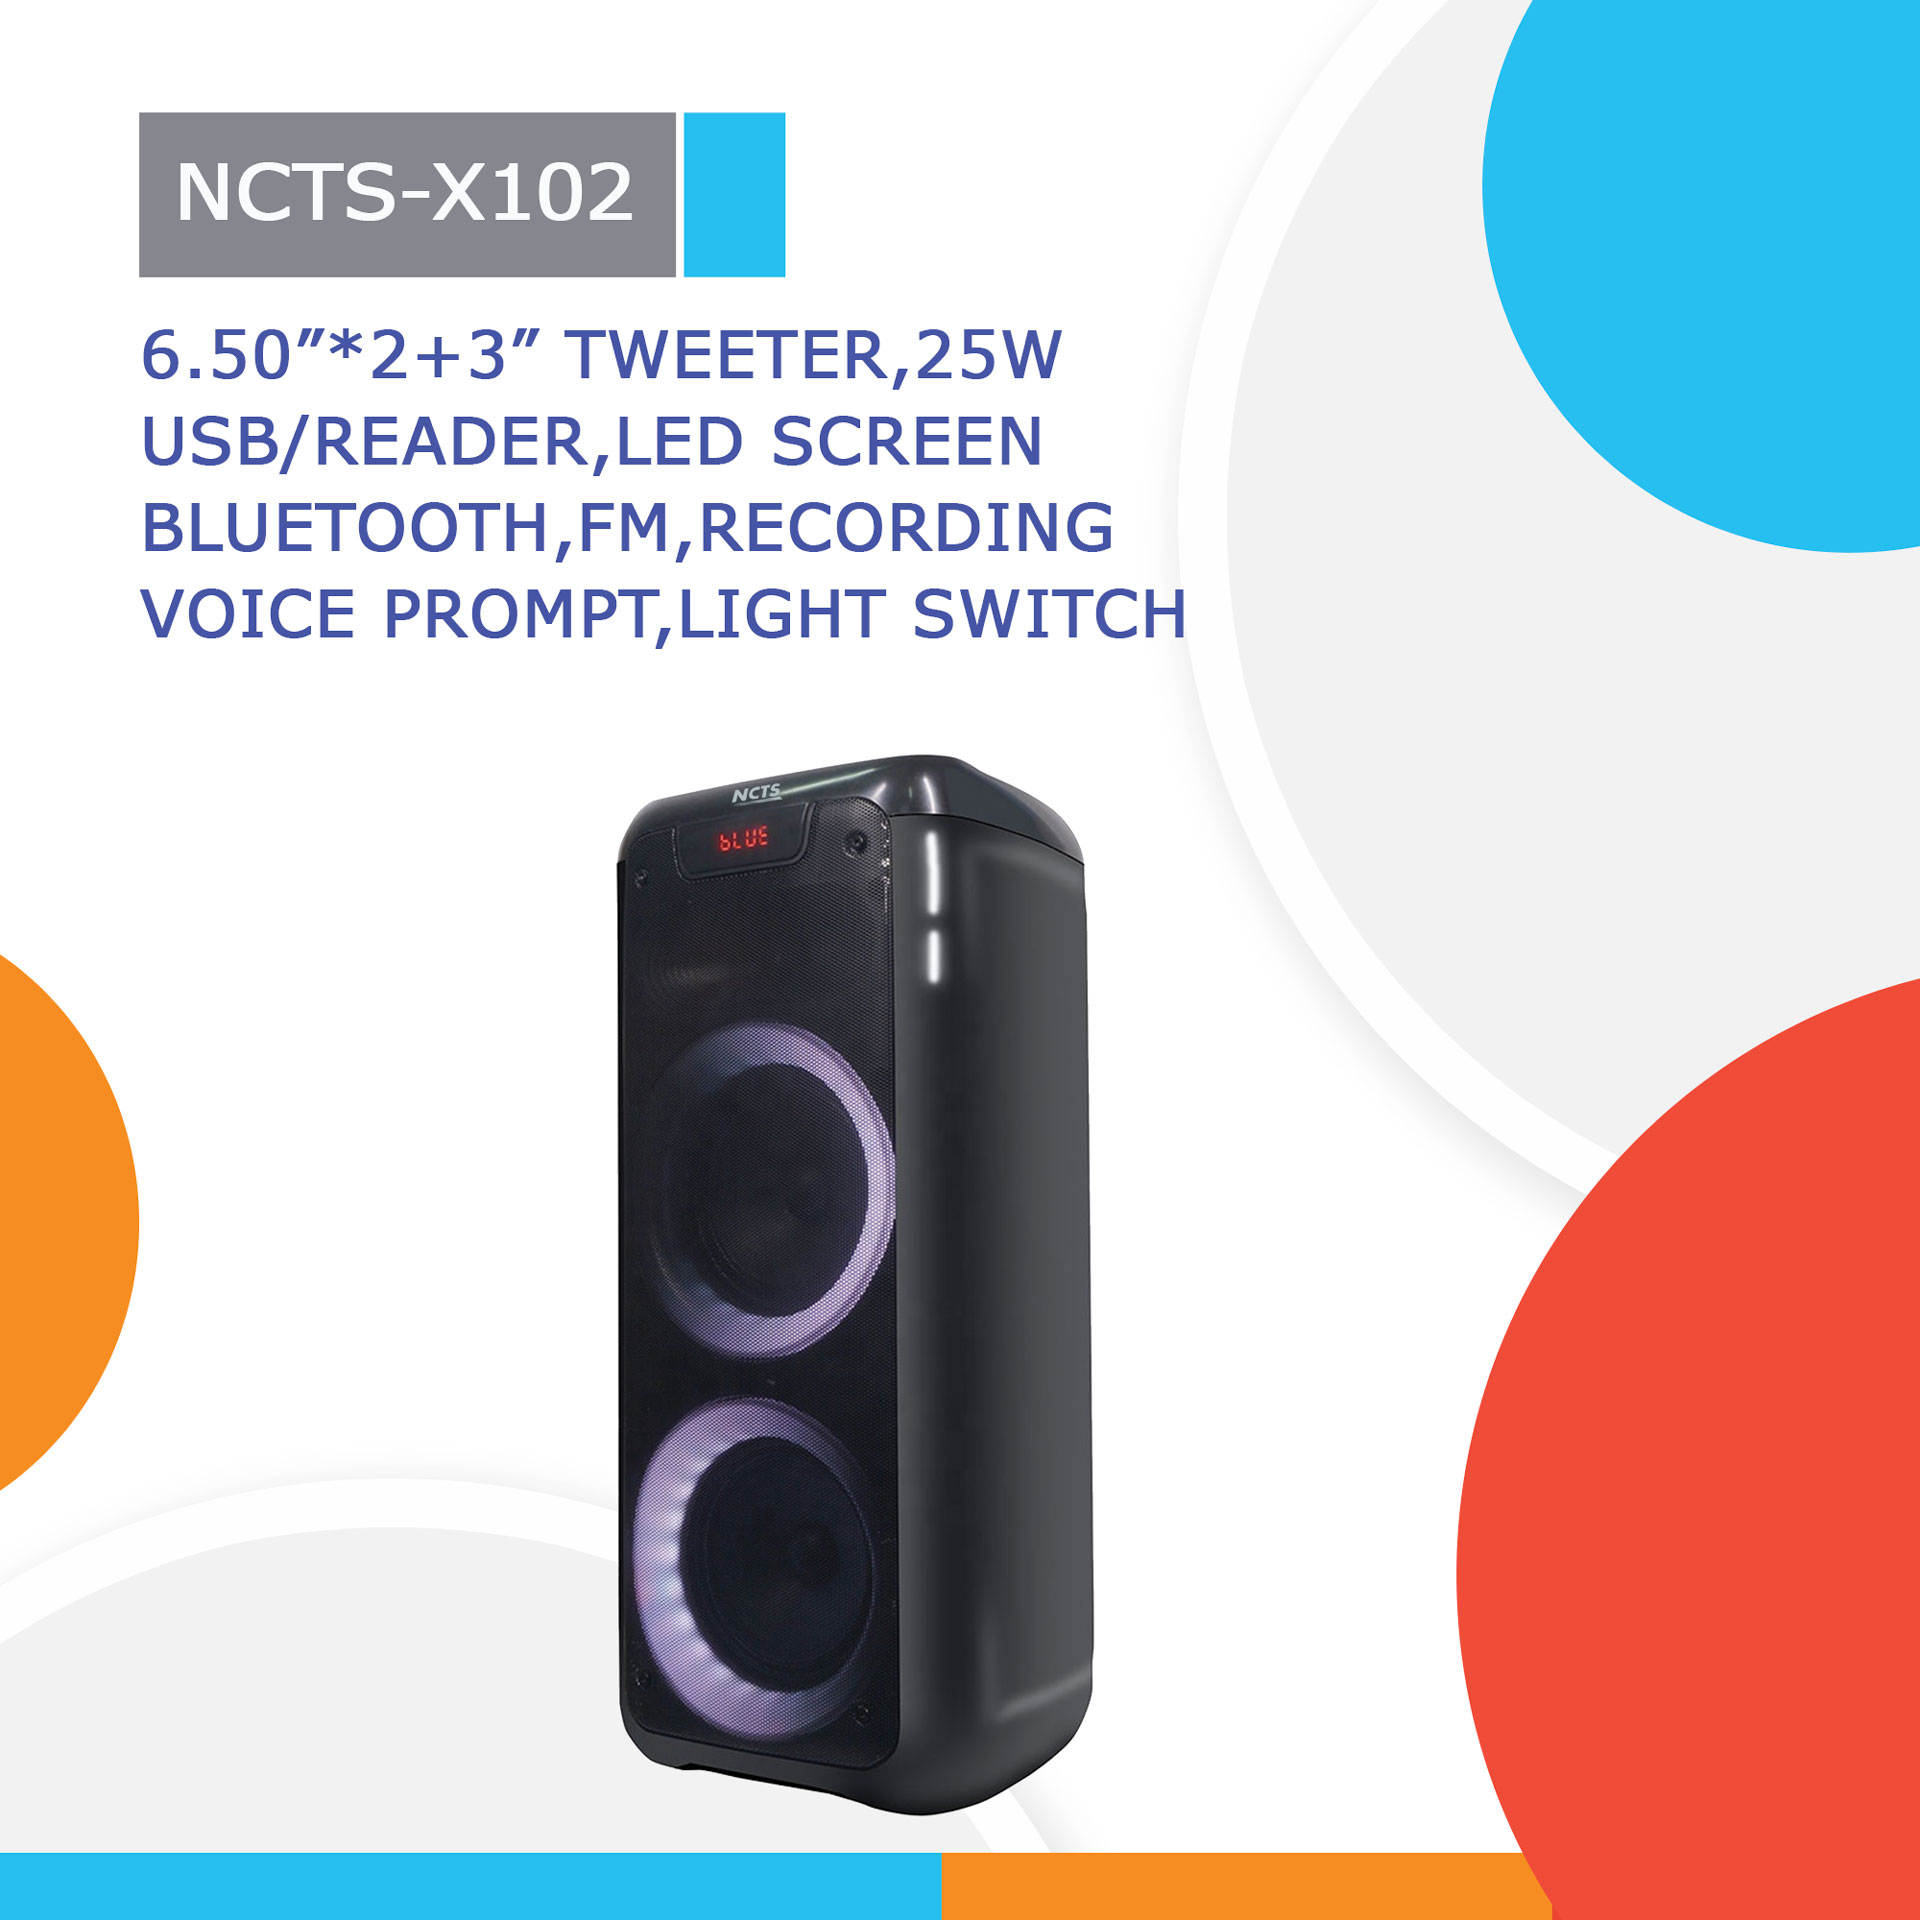 NCTS-X102